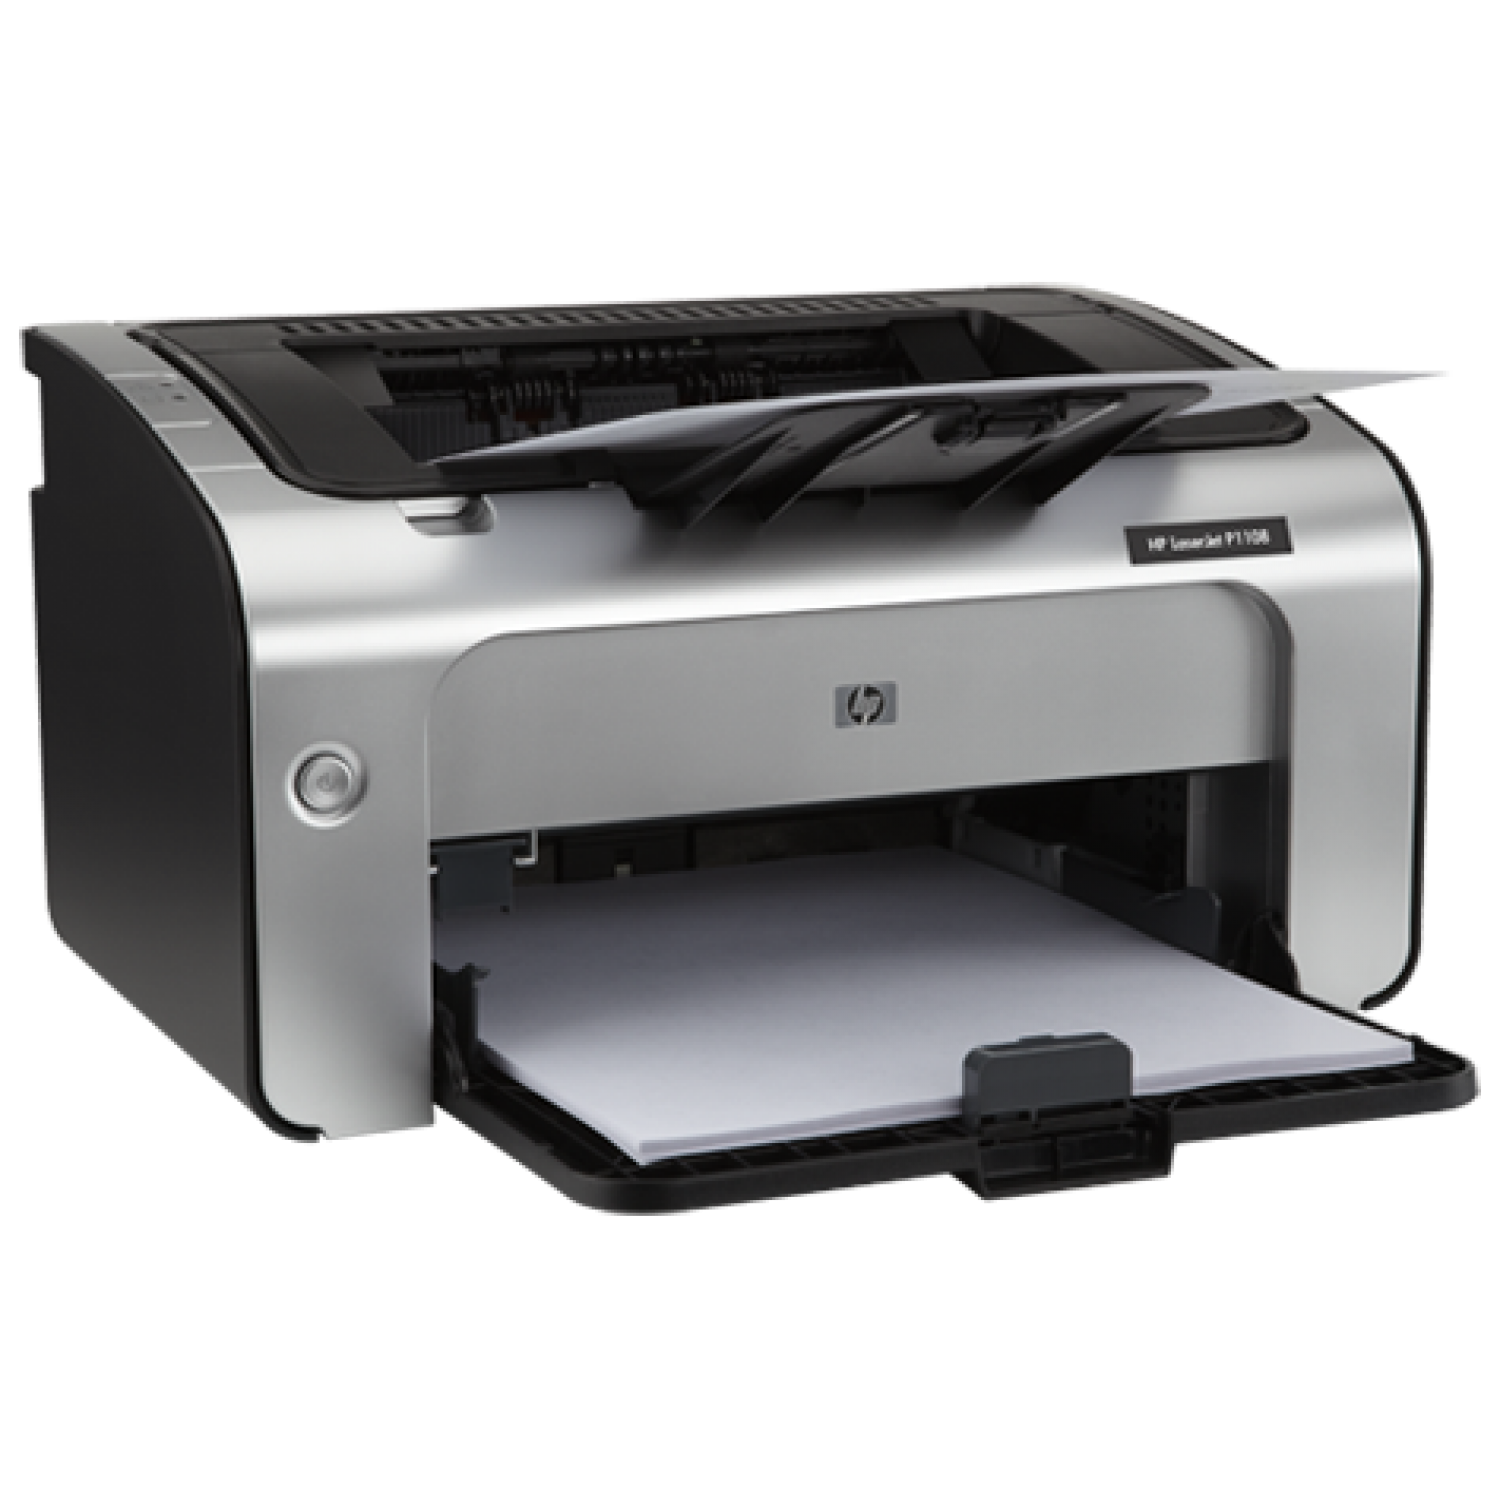 Printer images free download. Printing png files